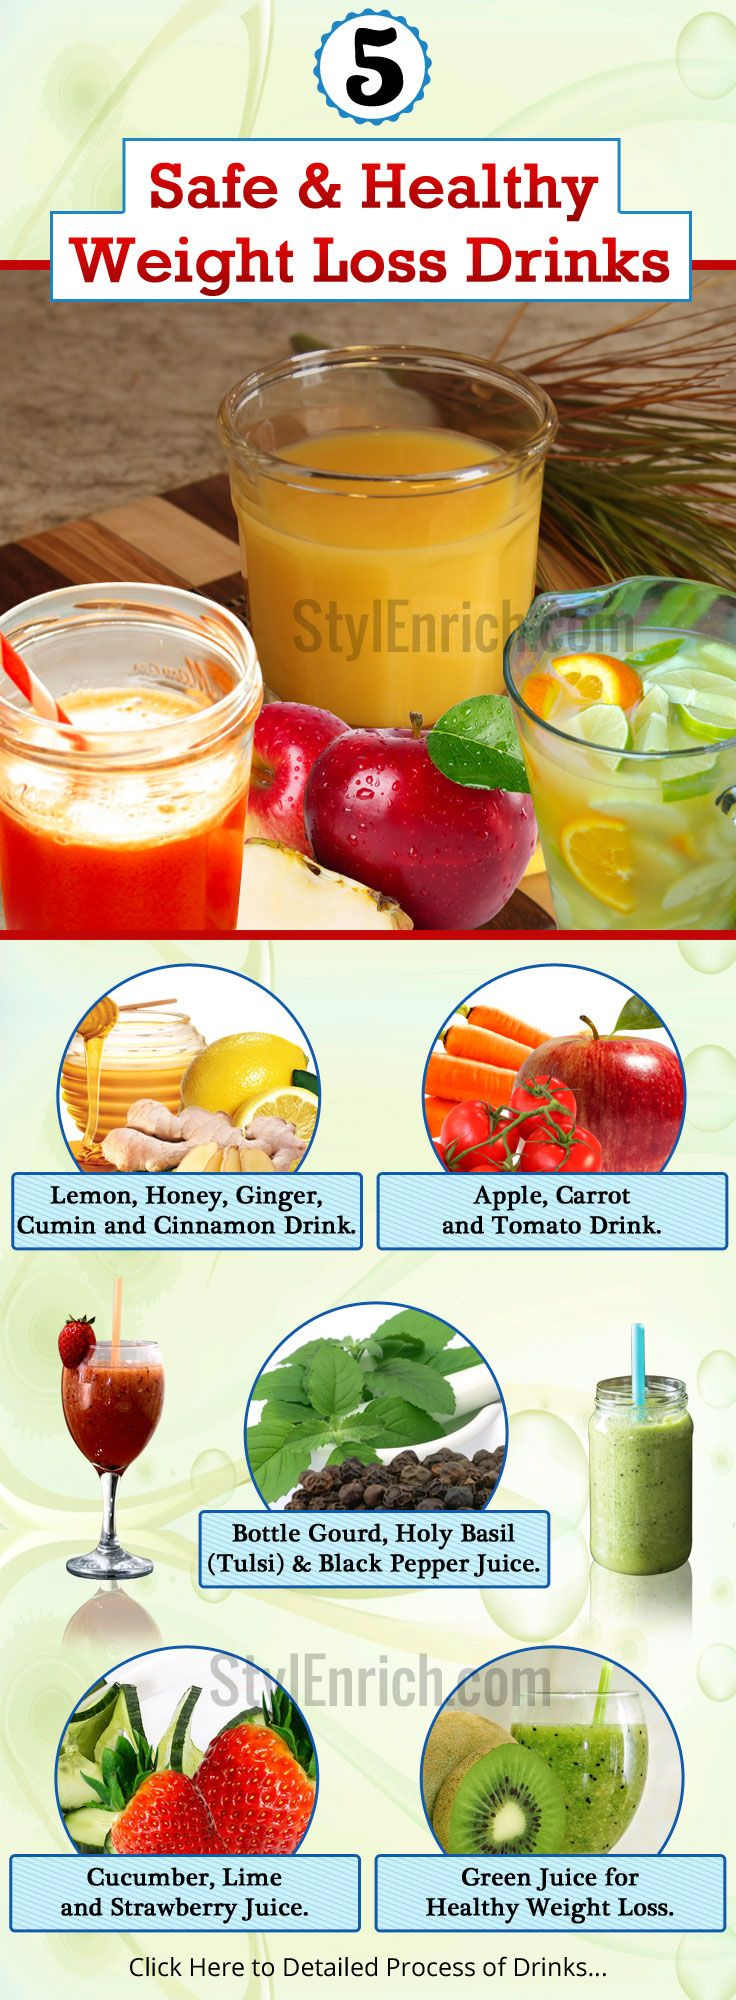 Worried about how to lose weight fast? #WeightLoss drinks are the latest fad in the world of weight watchers. Here are a few Weight loss drinks that will definitely help you with losing weight faster and effectively.